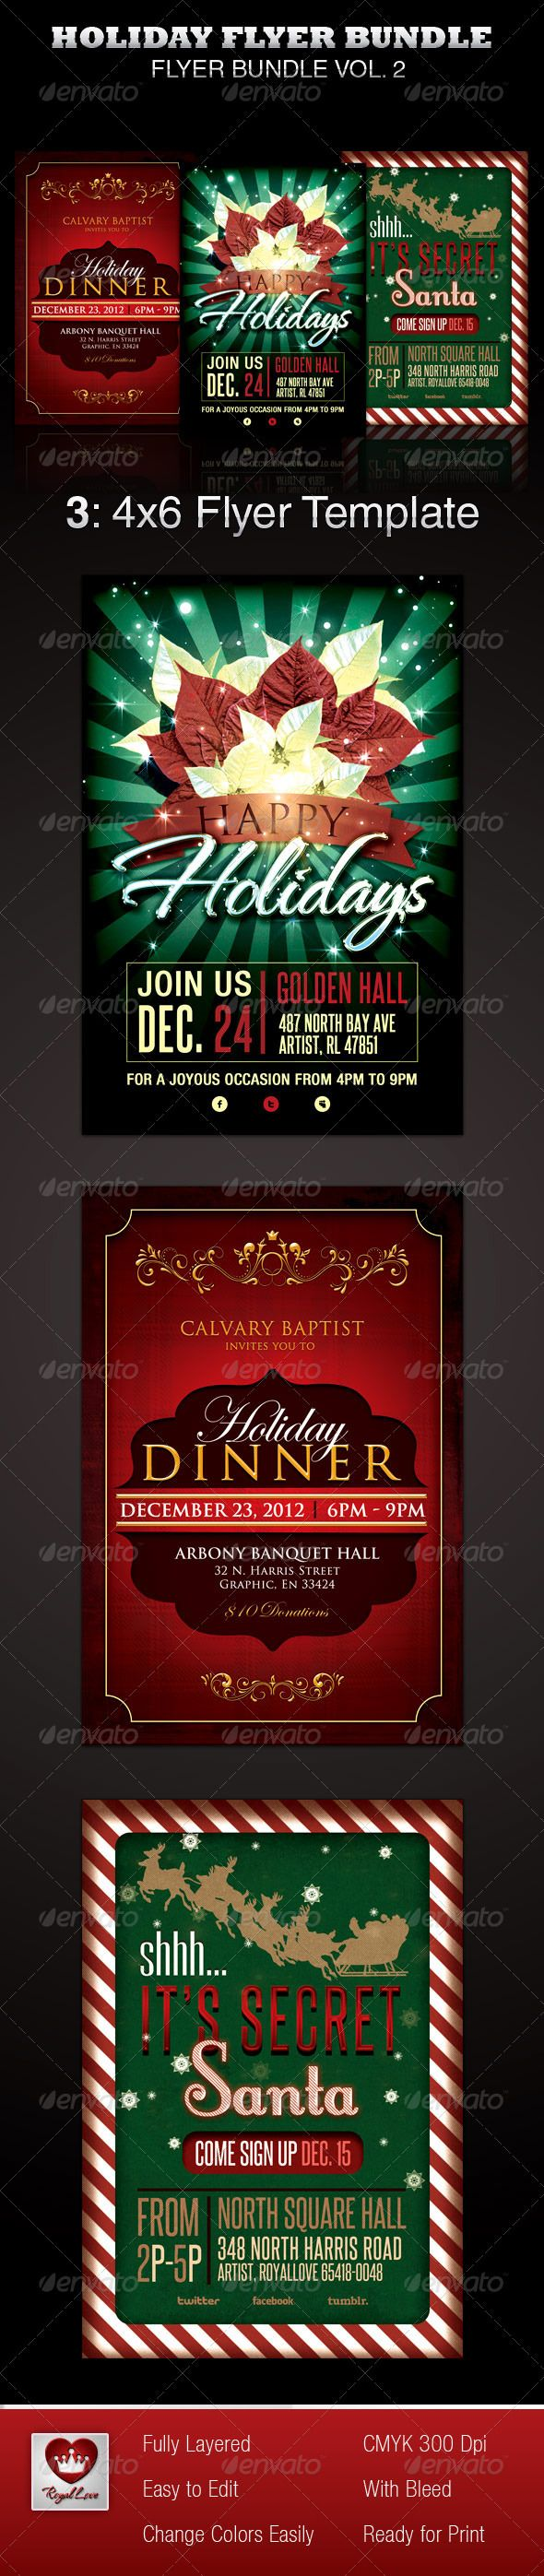 sign up flyer template